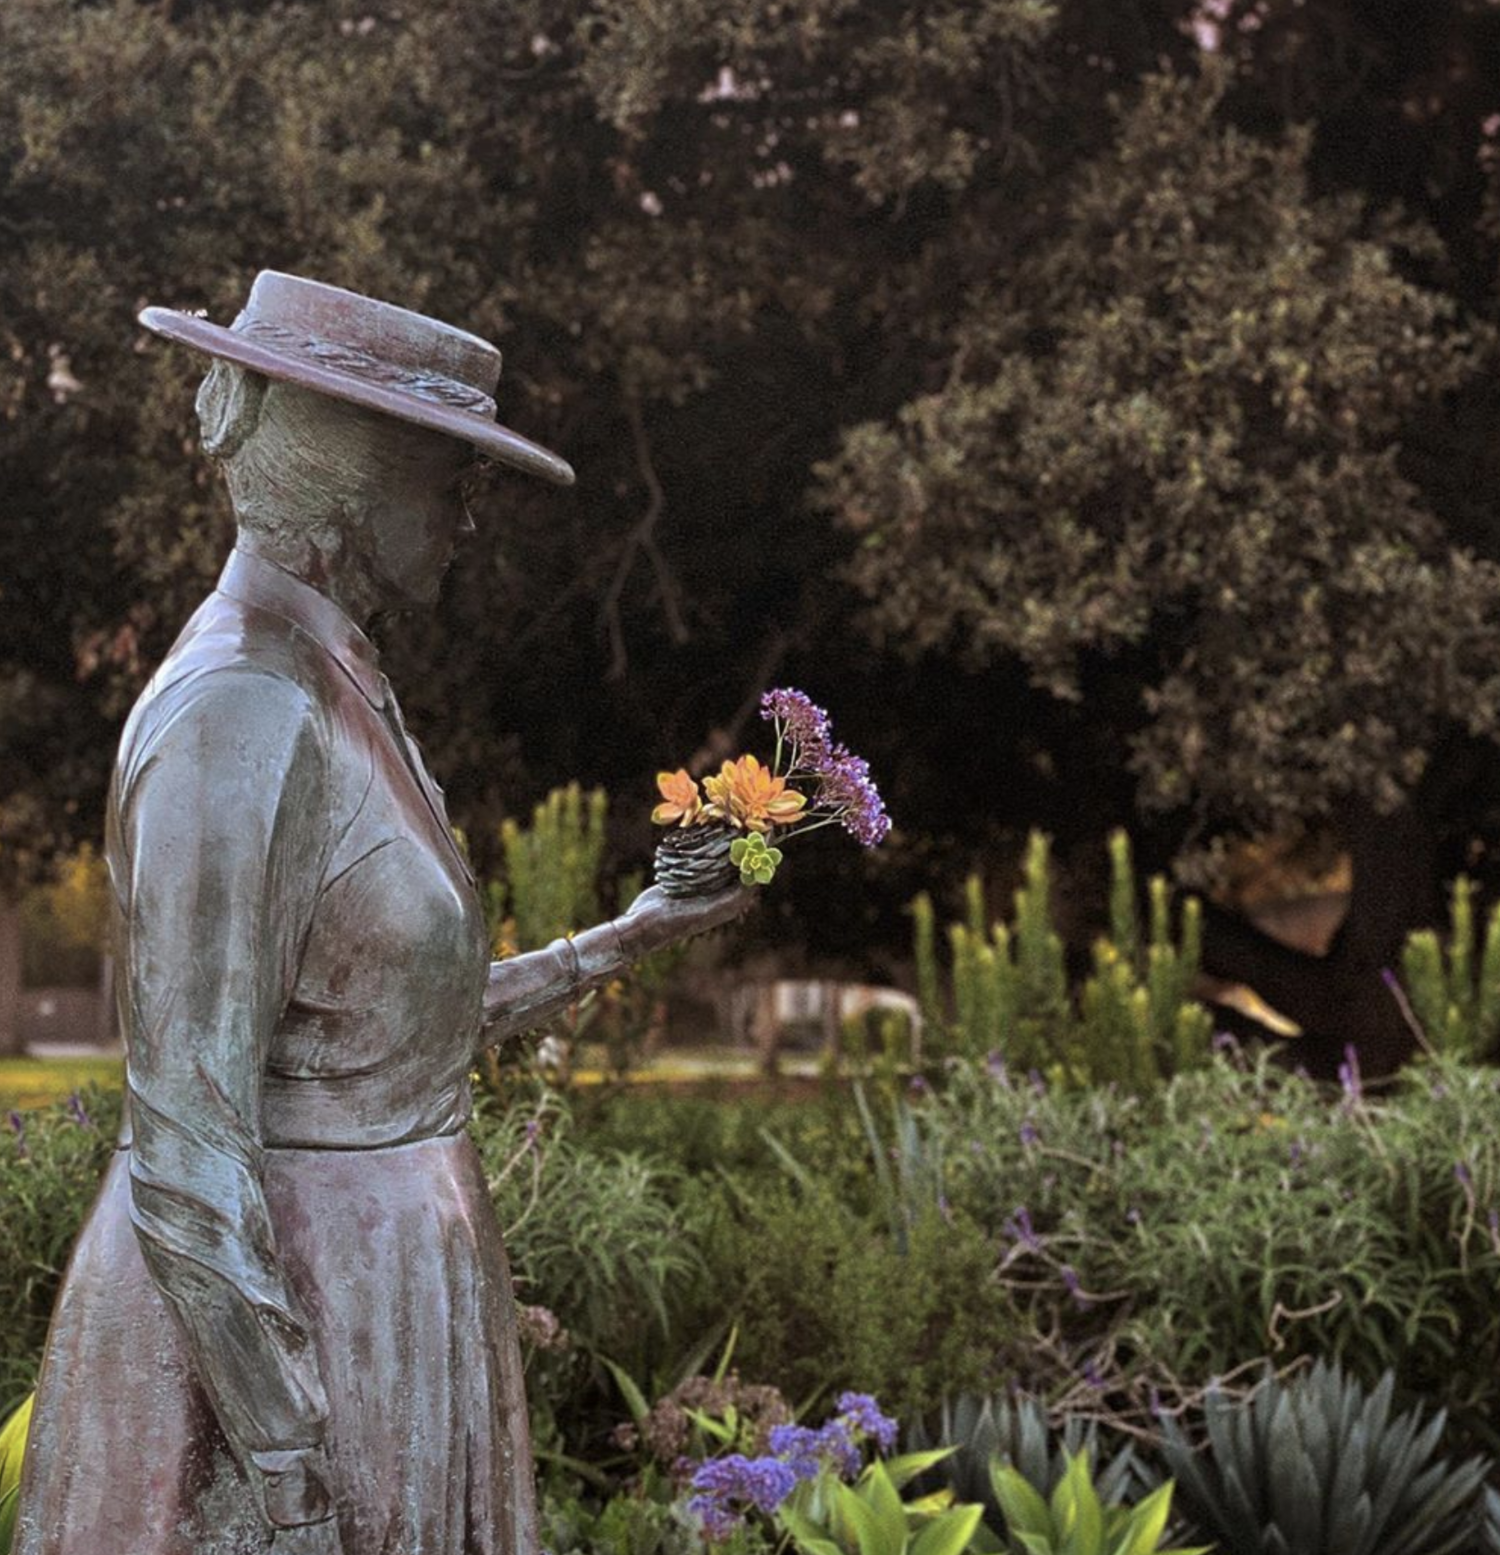 Bronze statue of Kate Sessions located in Balboa Park's Sefton Plaza.